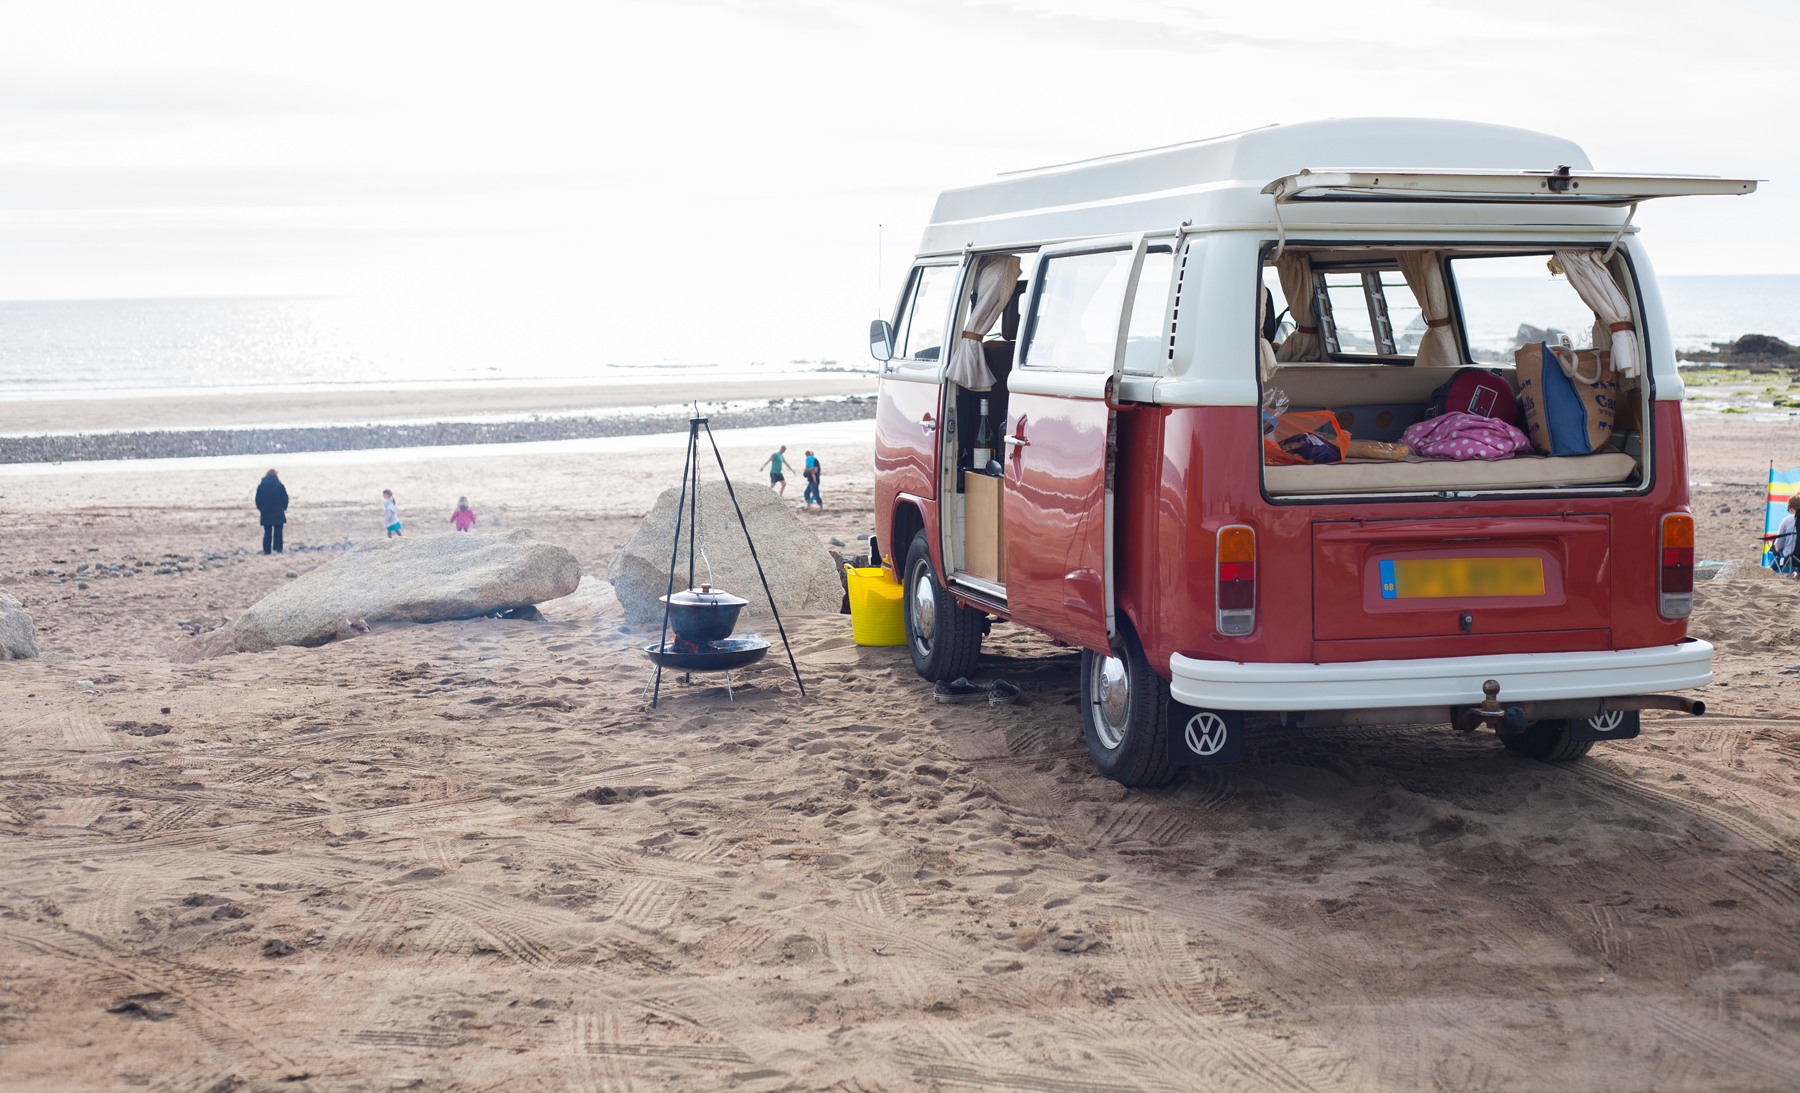 A campervan parked on a sandy beach